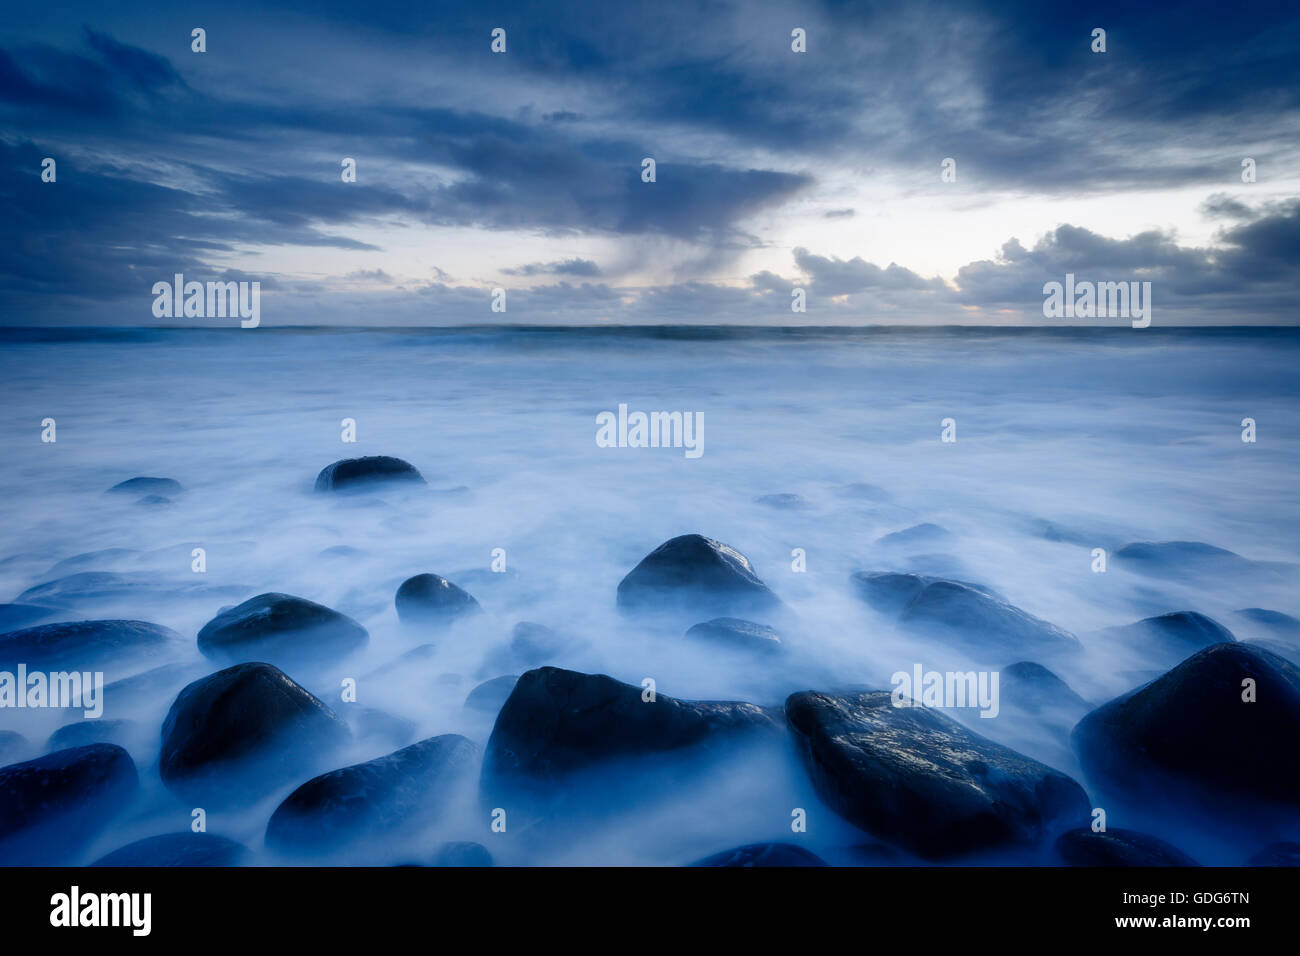 Death rocks during the blue hour at Embleton Bay - Stock Image